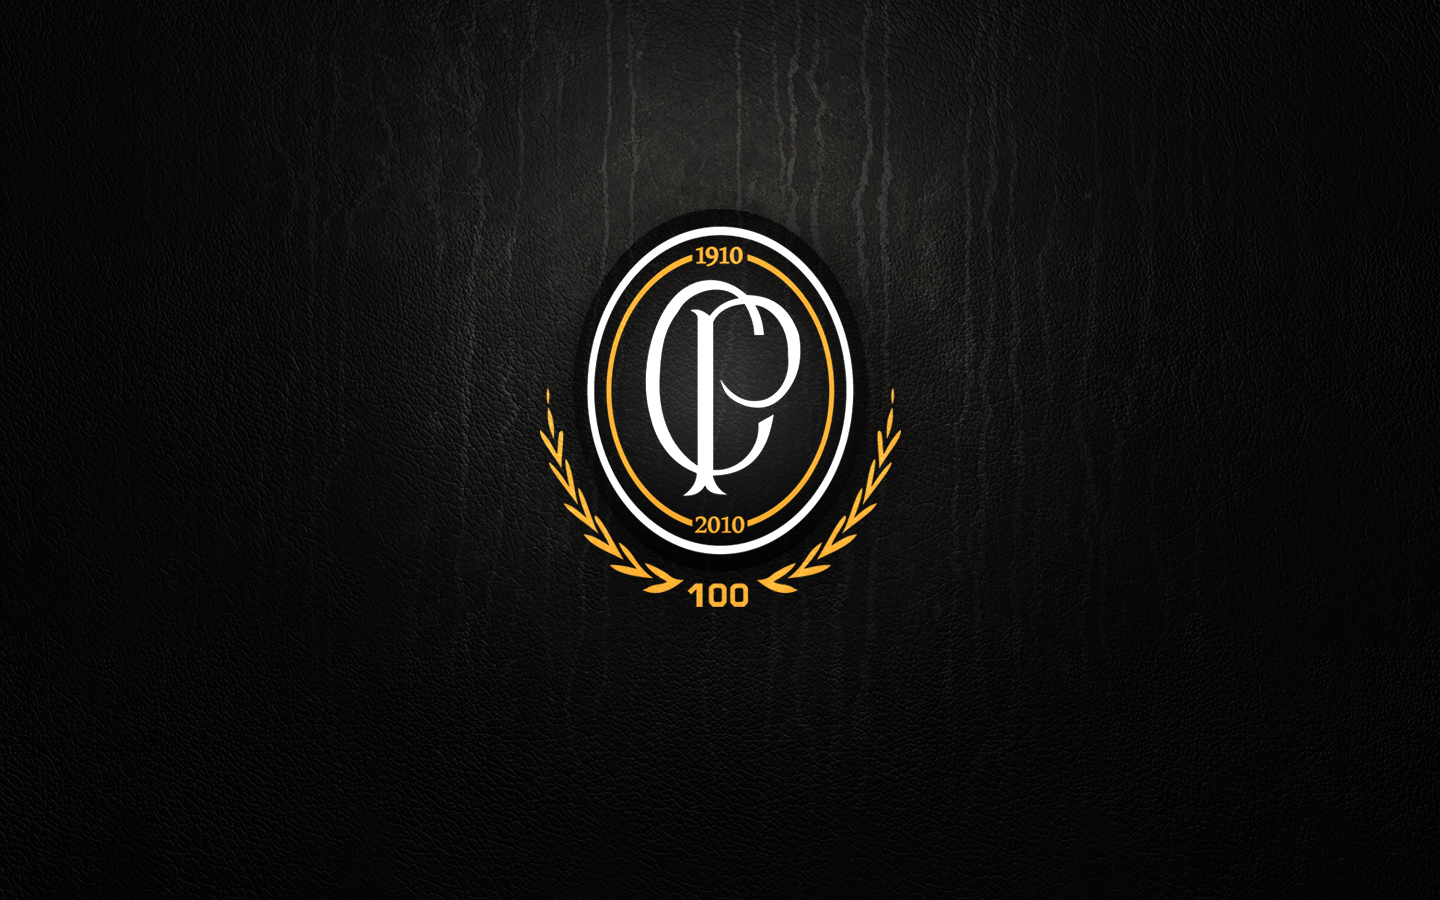 Corinthians 100 Wallpaper by igorrcarvalho on DeviantArt